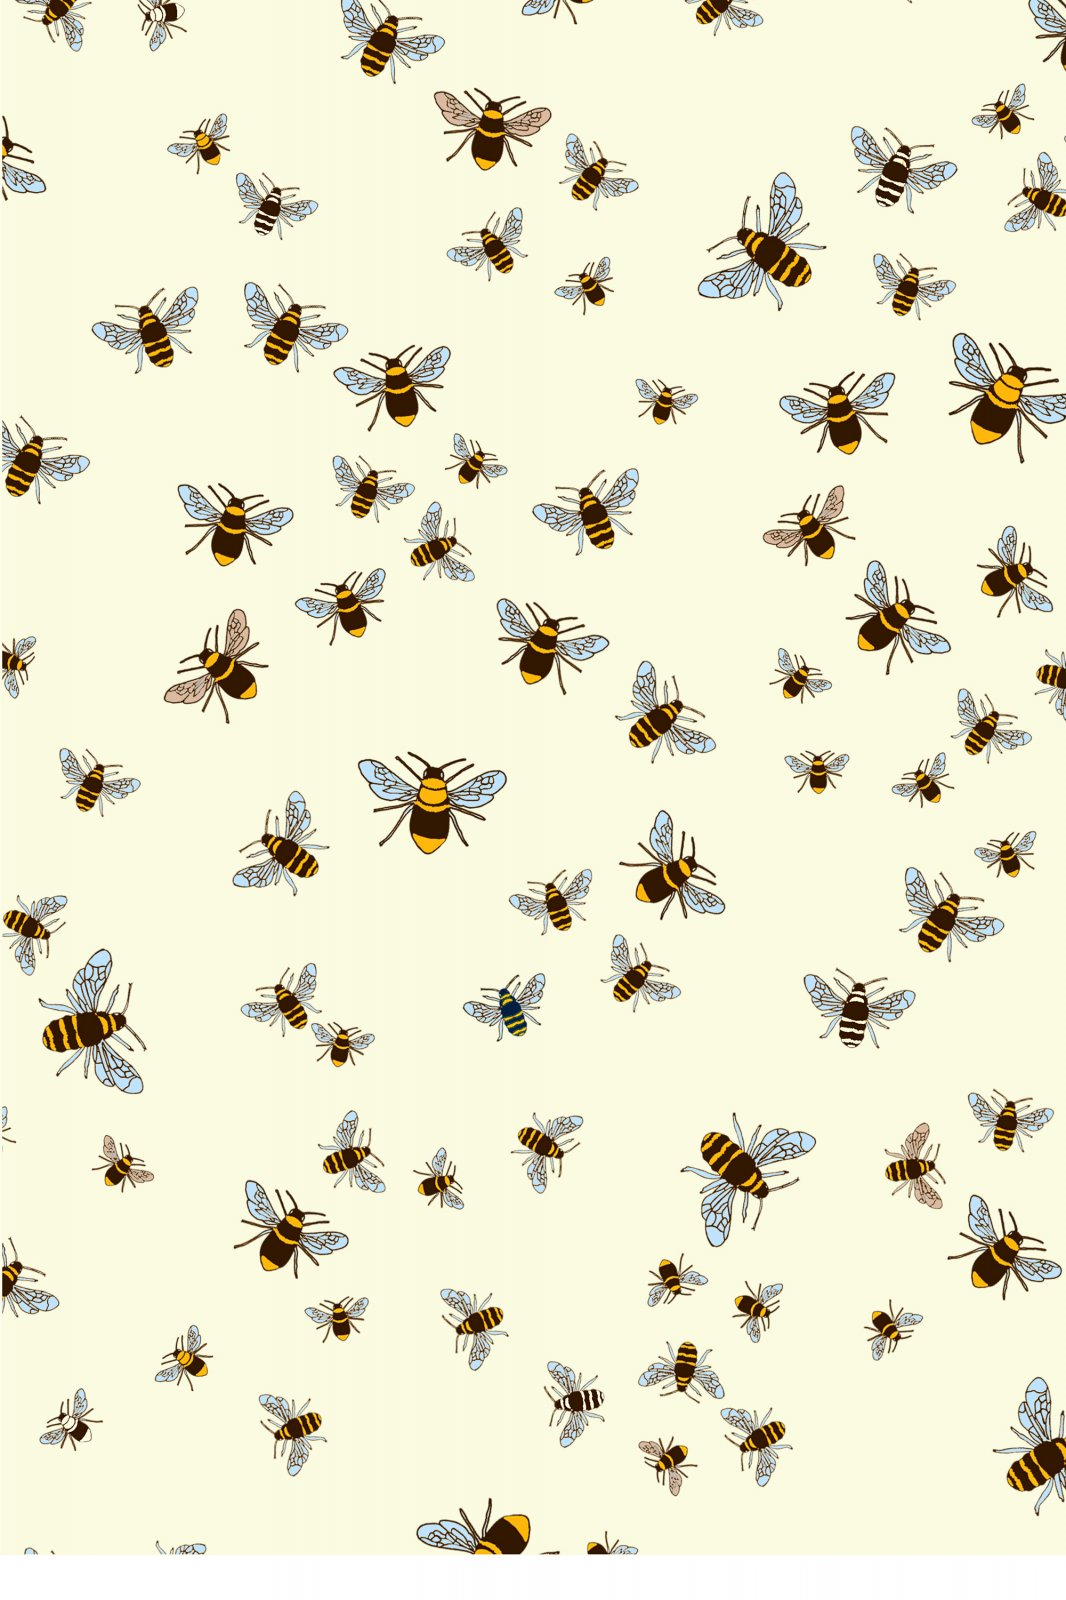 Jane Makower United Kingdom England Retro Bees Insect Honeybee Wildlife UK Cotton Quilt Fabric JM04